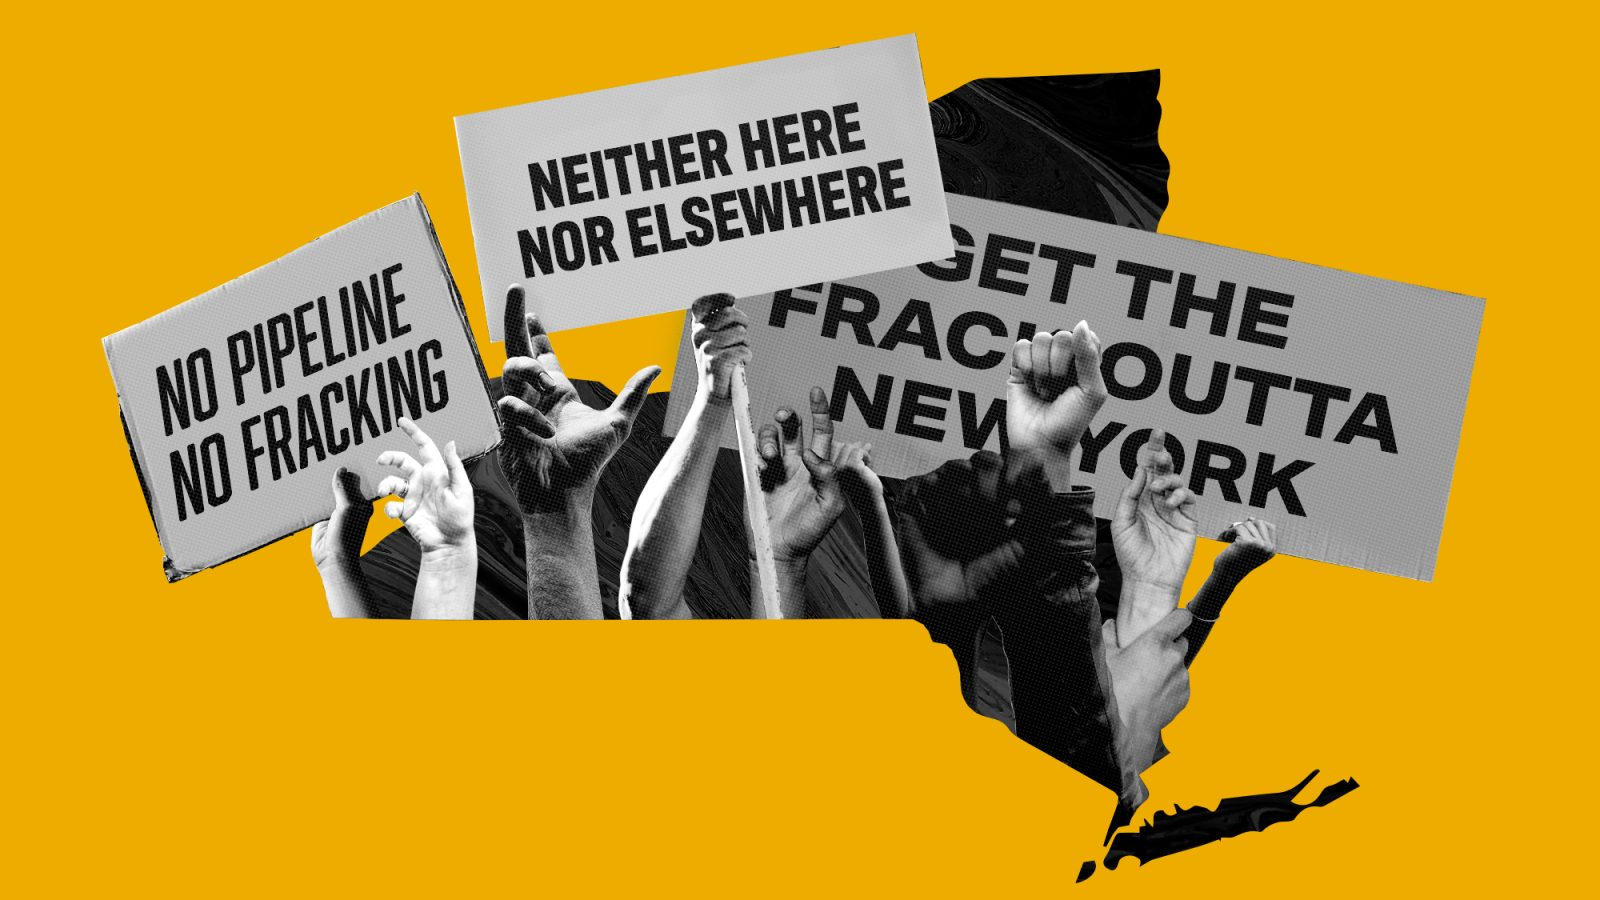 Pipeline protest signs in NY